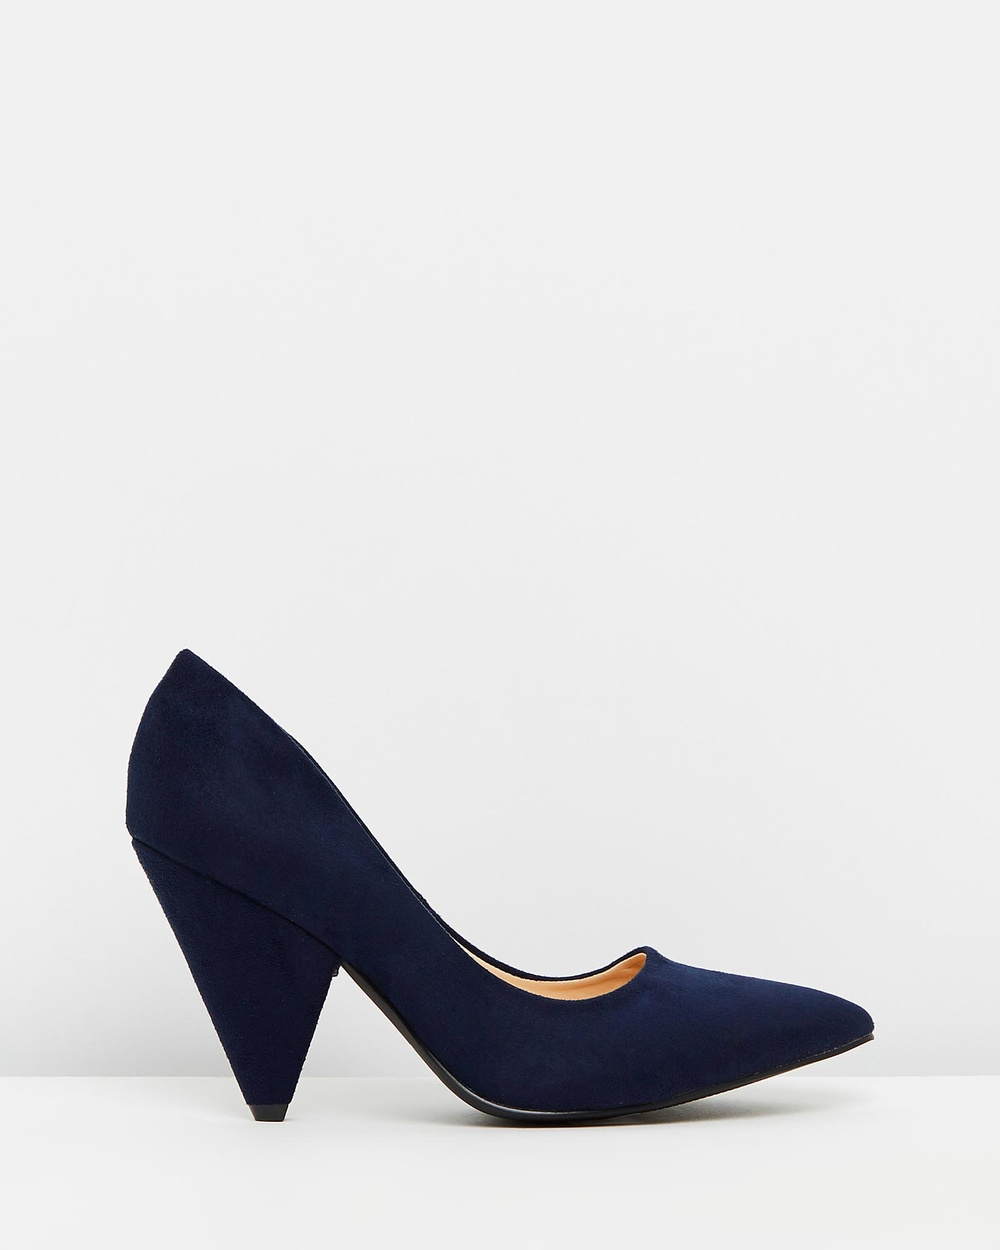 Verali Innis All Pumps Navy Micro Innis